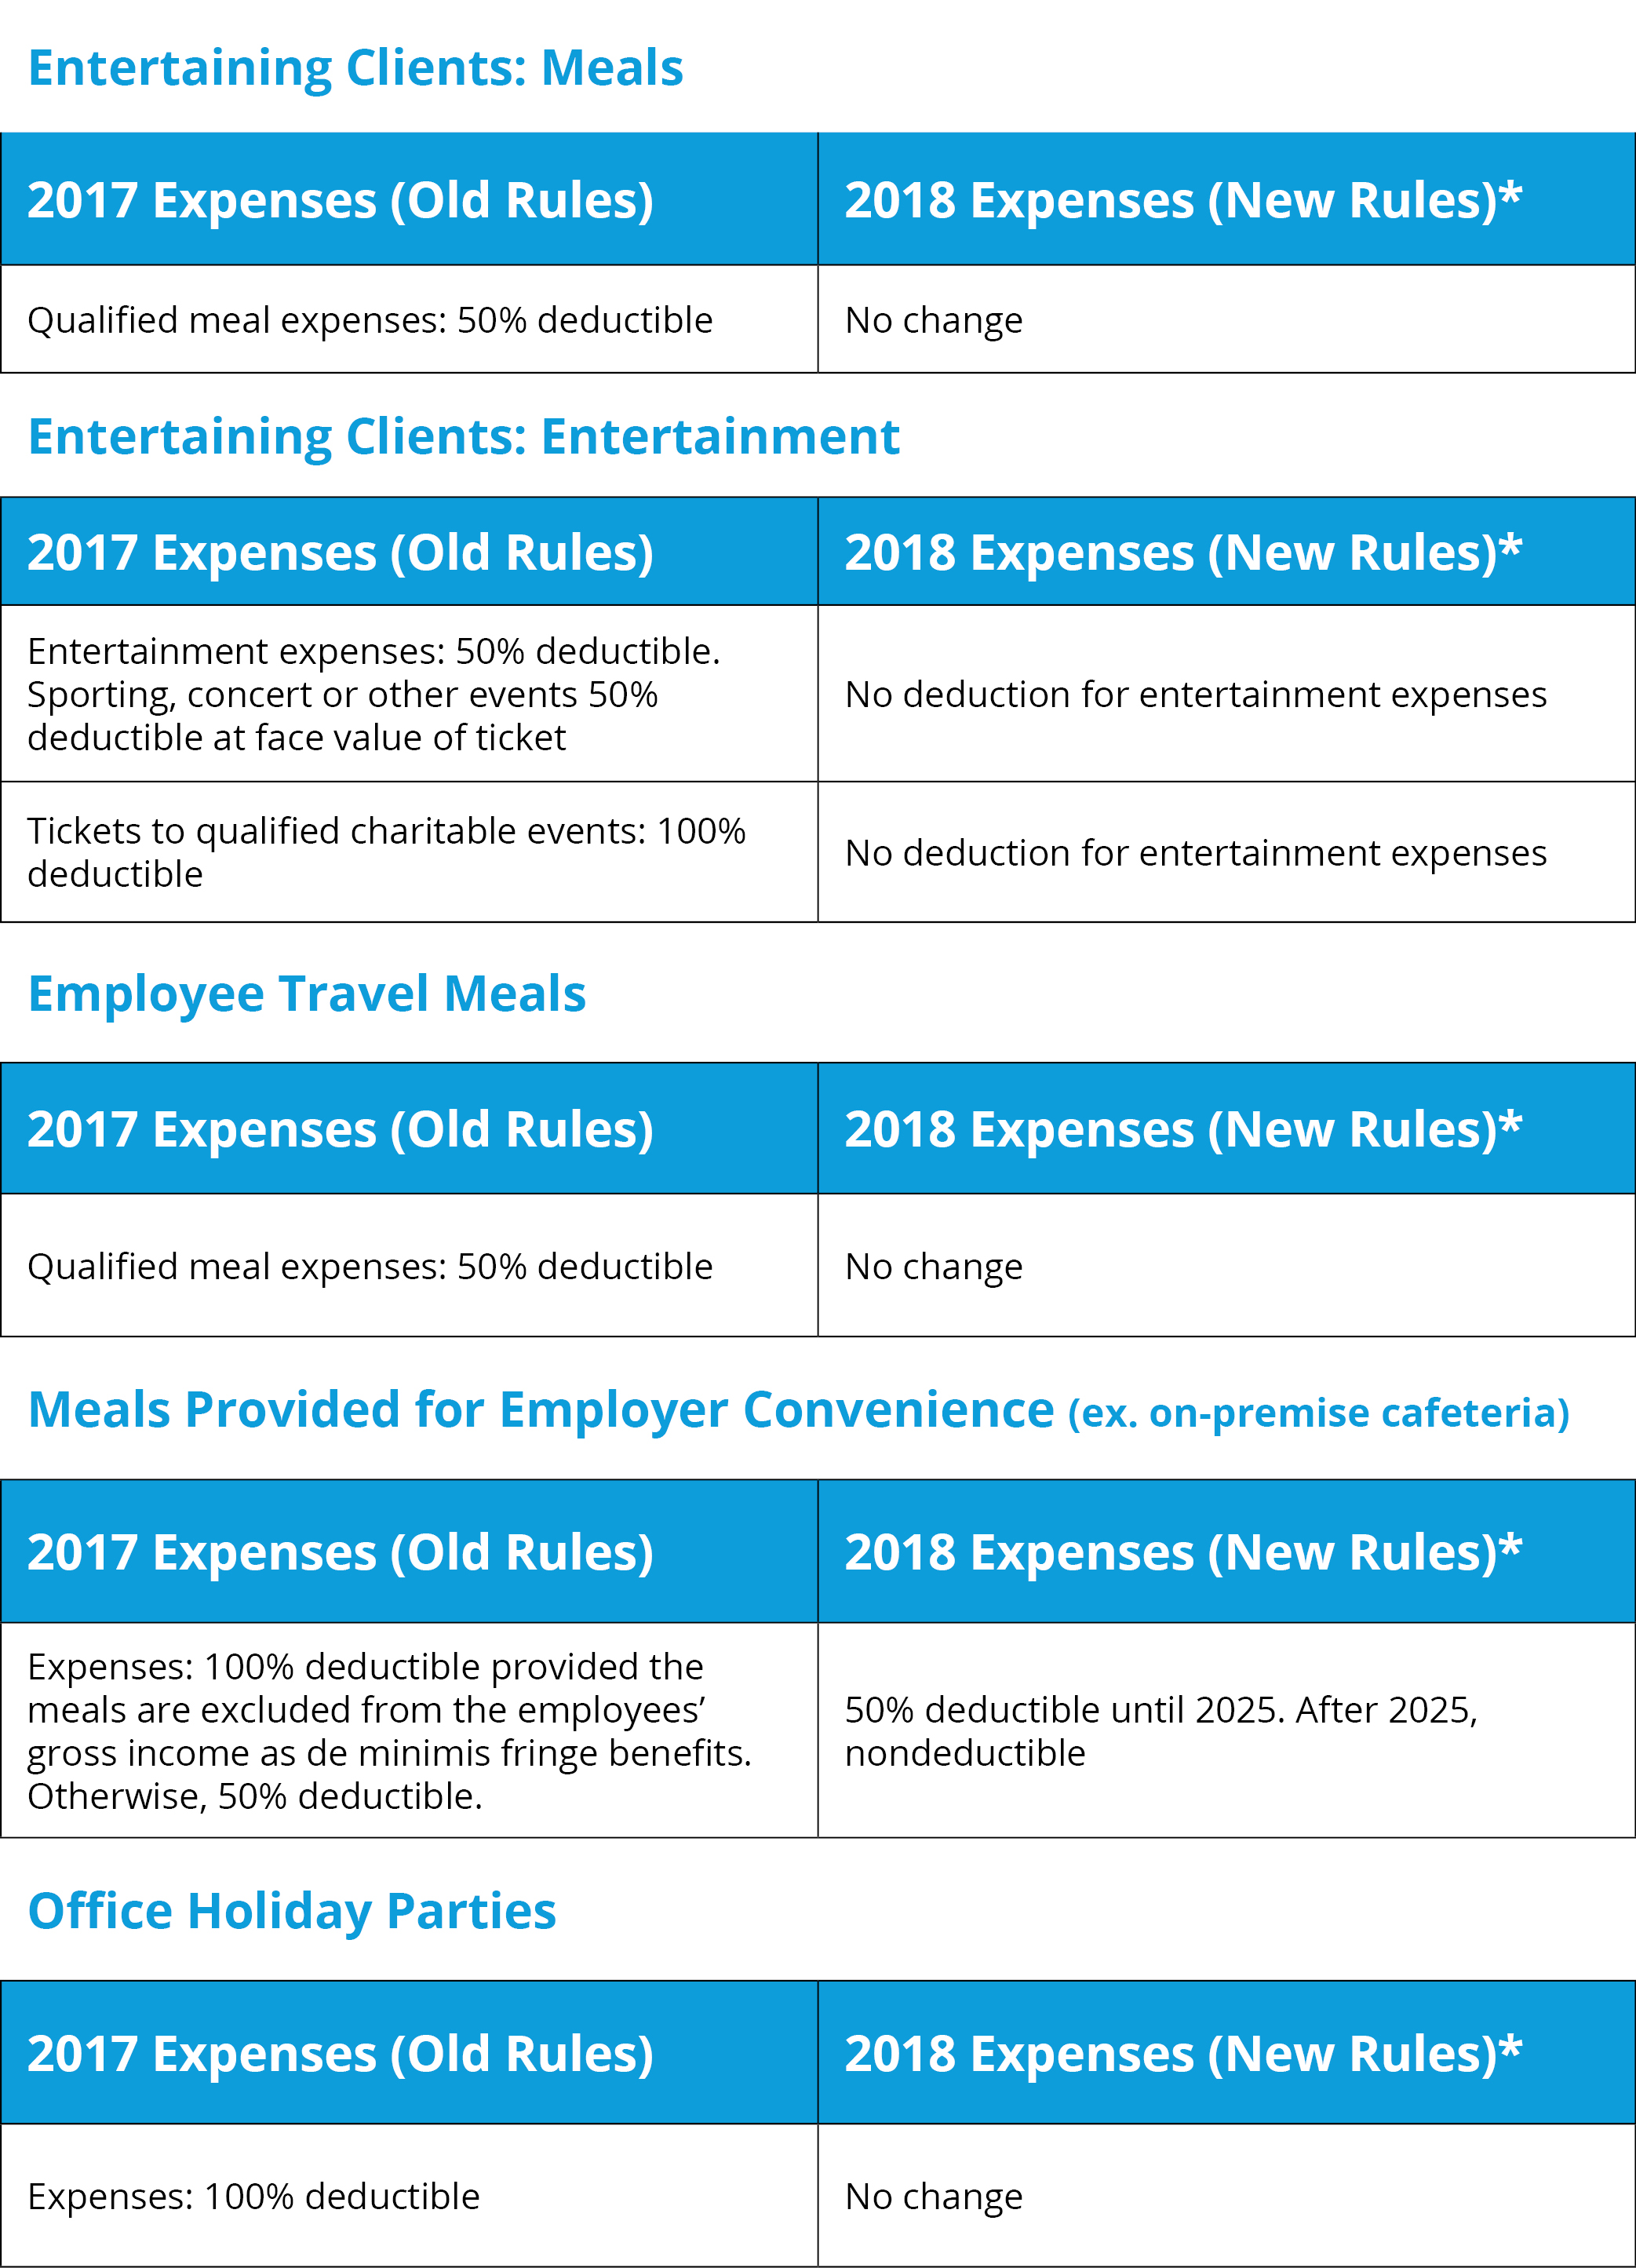 2018 Deduction Changes - Entertainment, Travel, Meals, and Office Parties